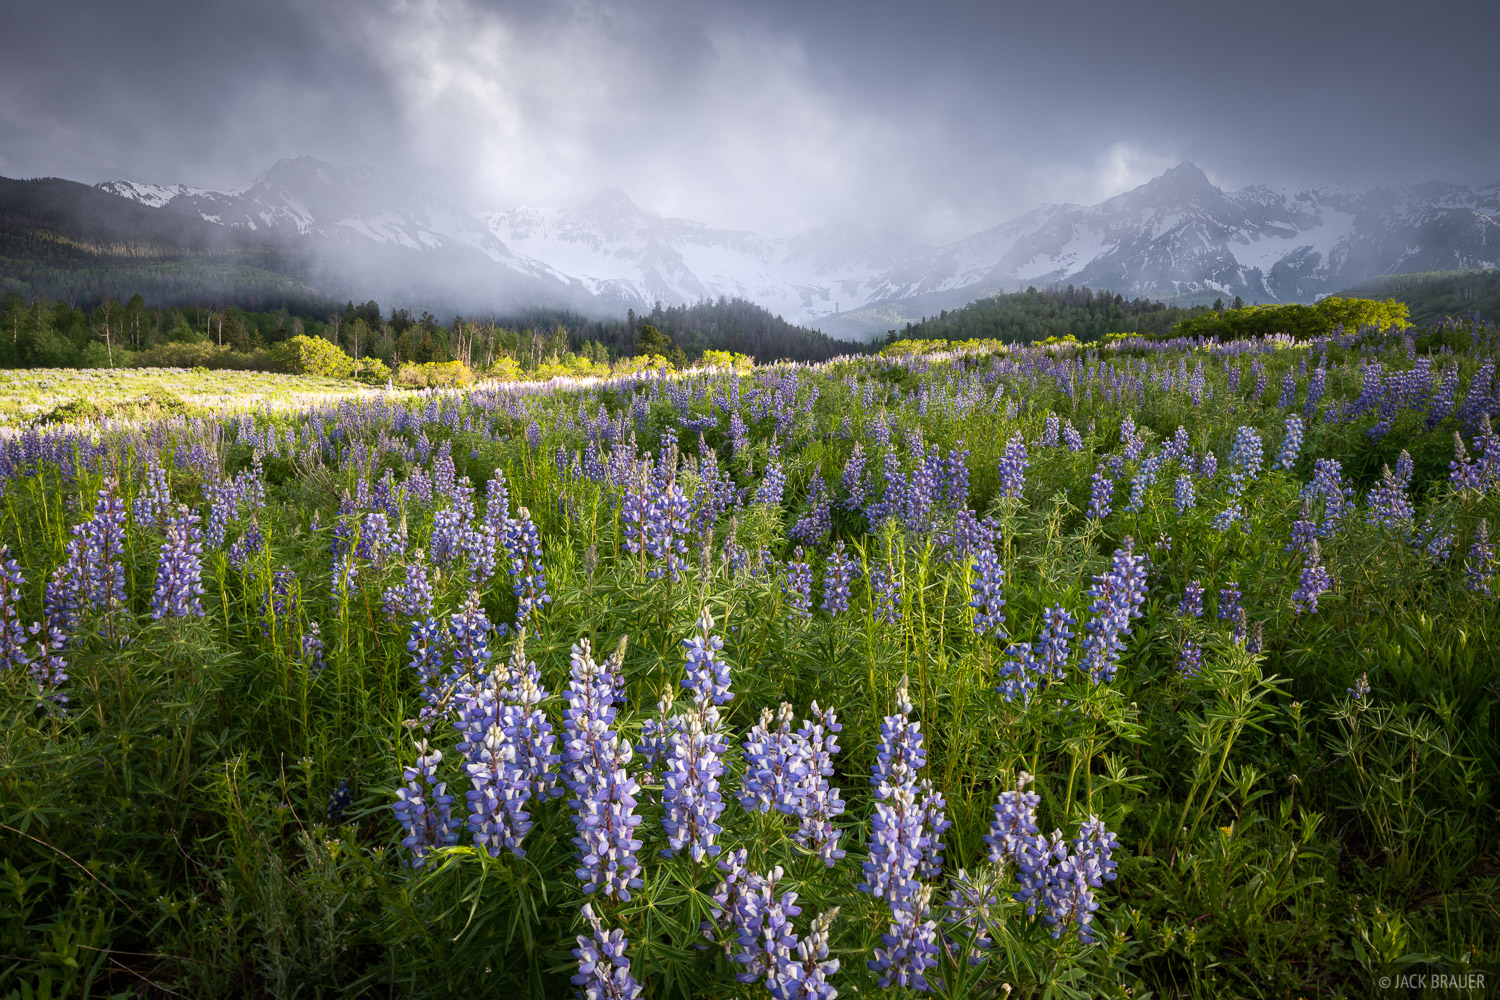 Colorado, Mears Peak, San Juan Mountains, Sneffels Range, wildflowers, lupines, photo